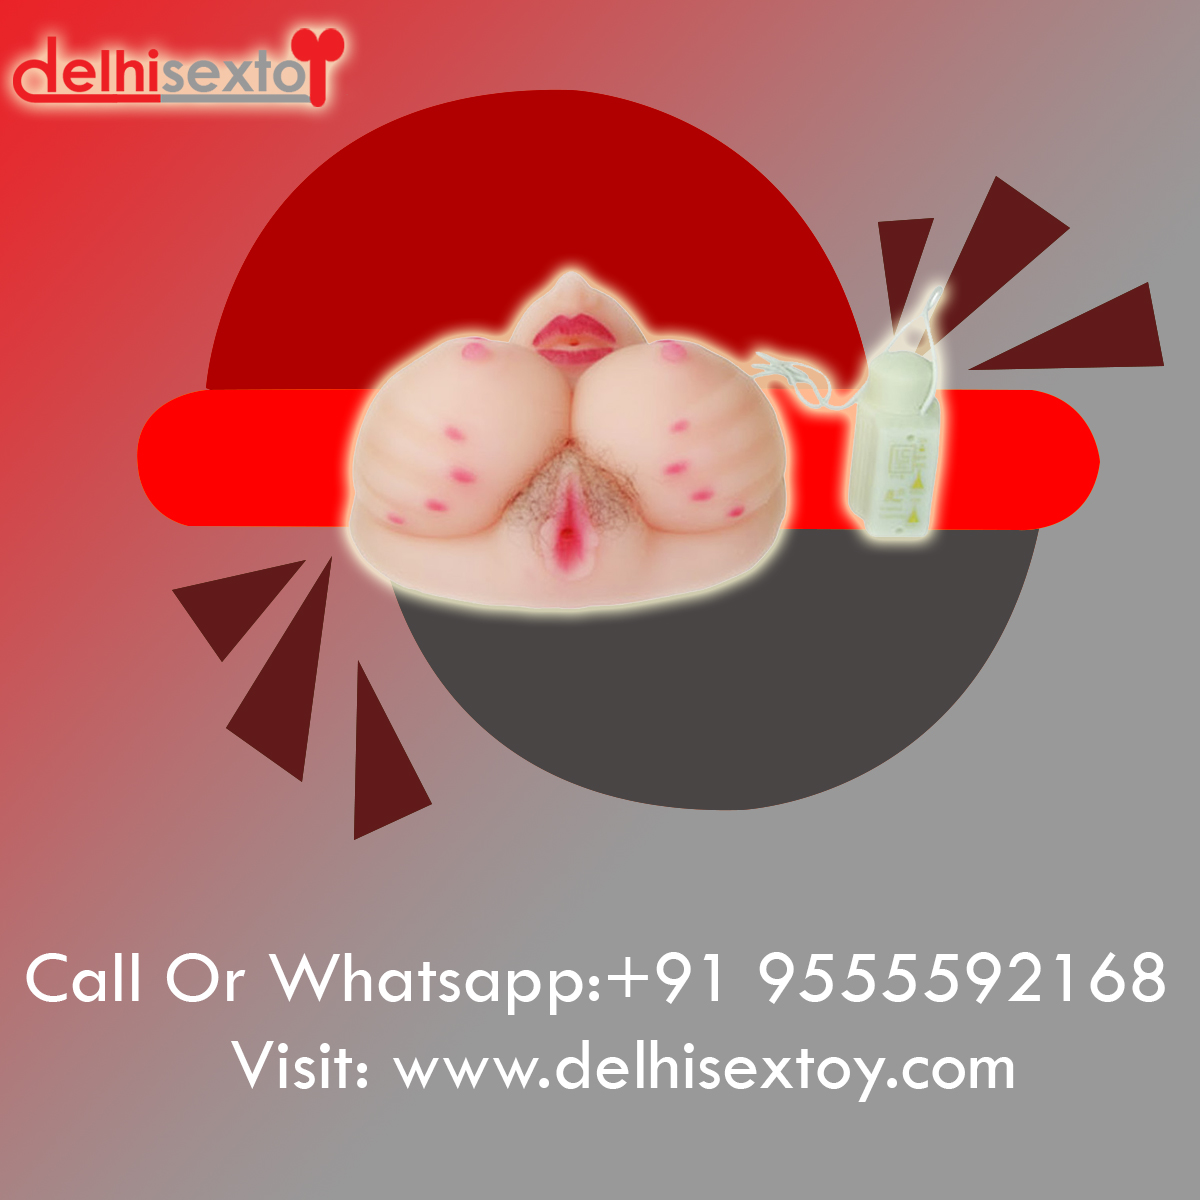 Low Cost Sex Toys Sale In Tiruchirappalli